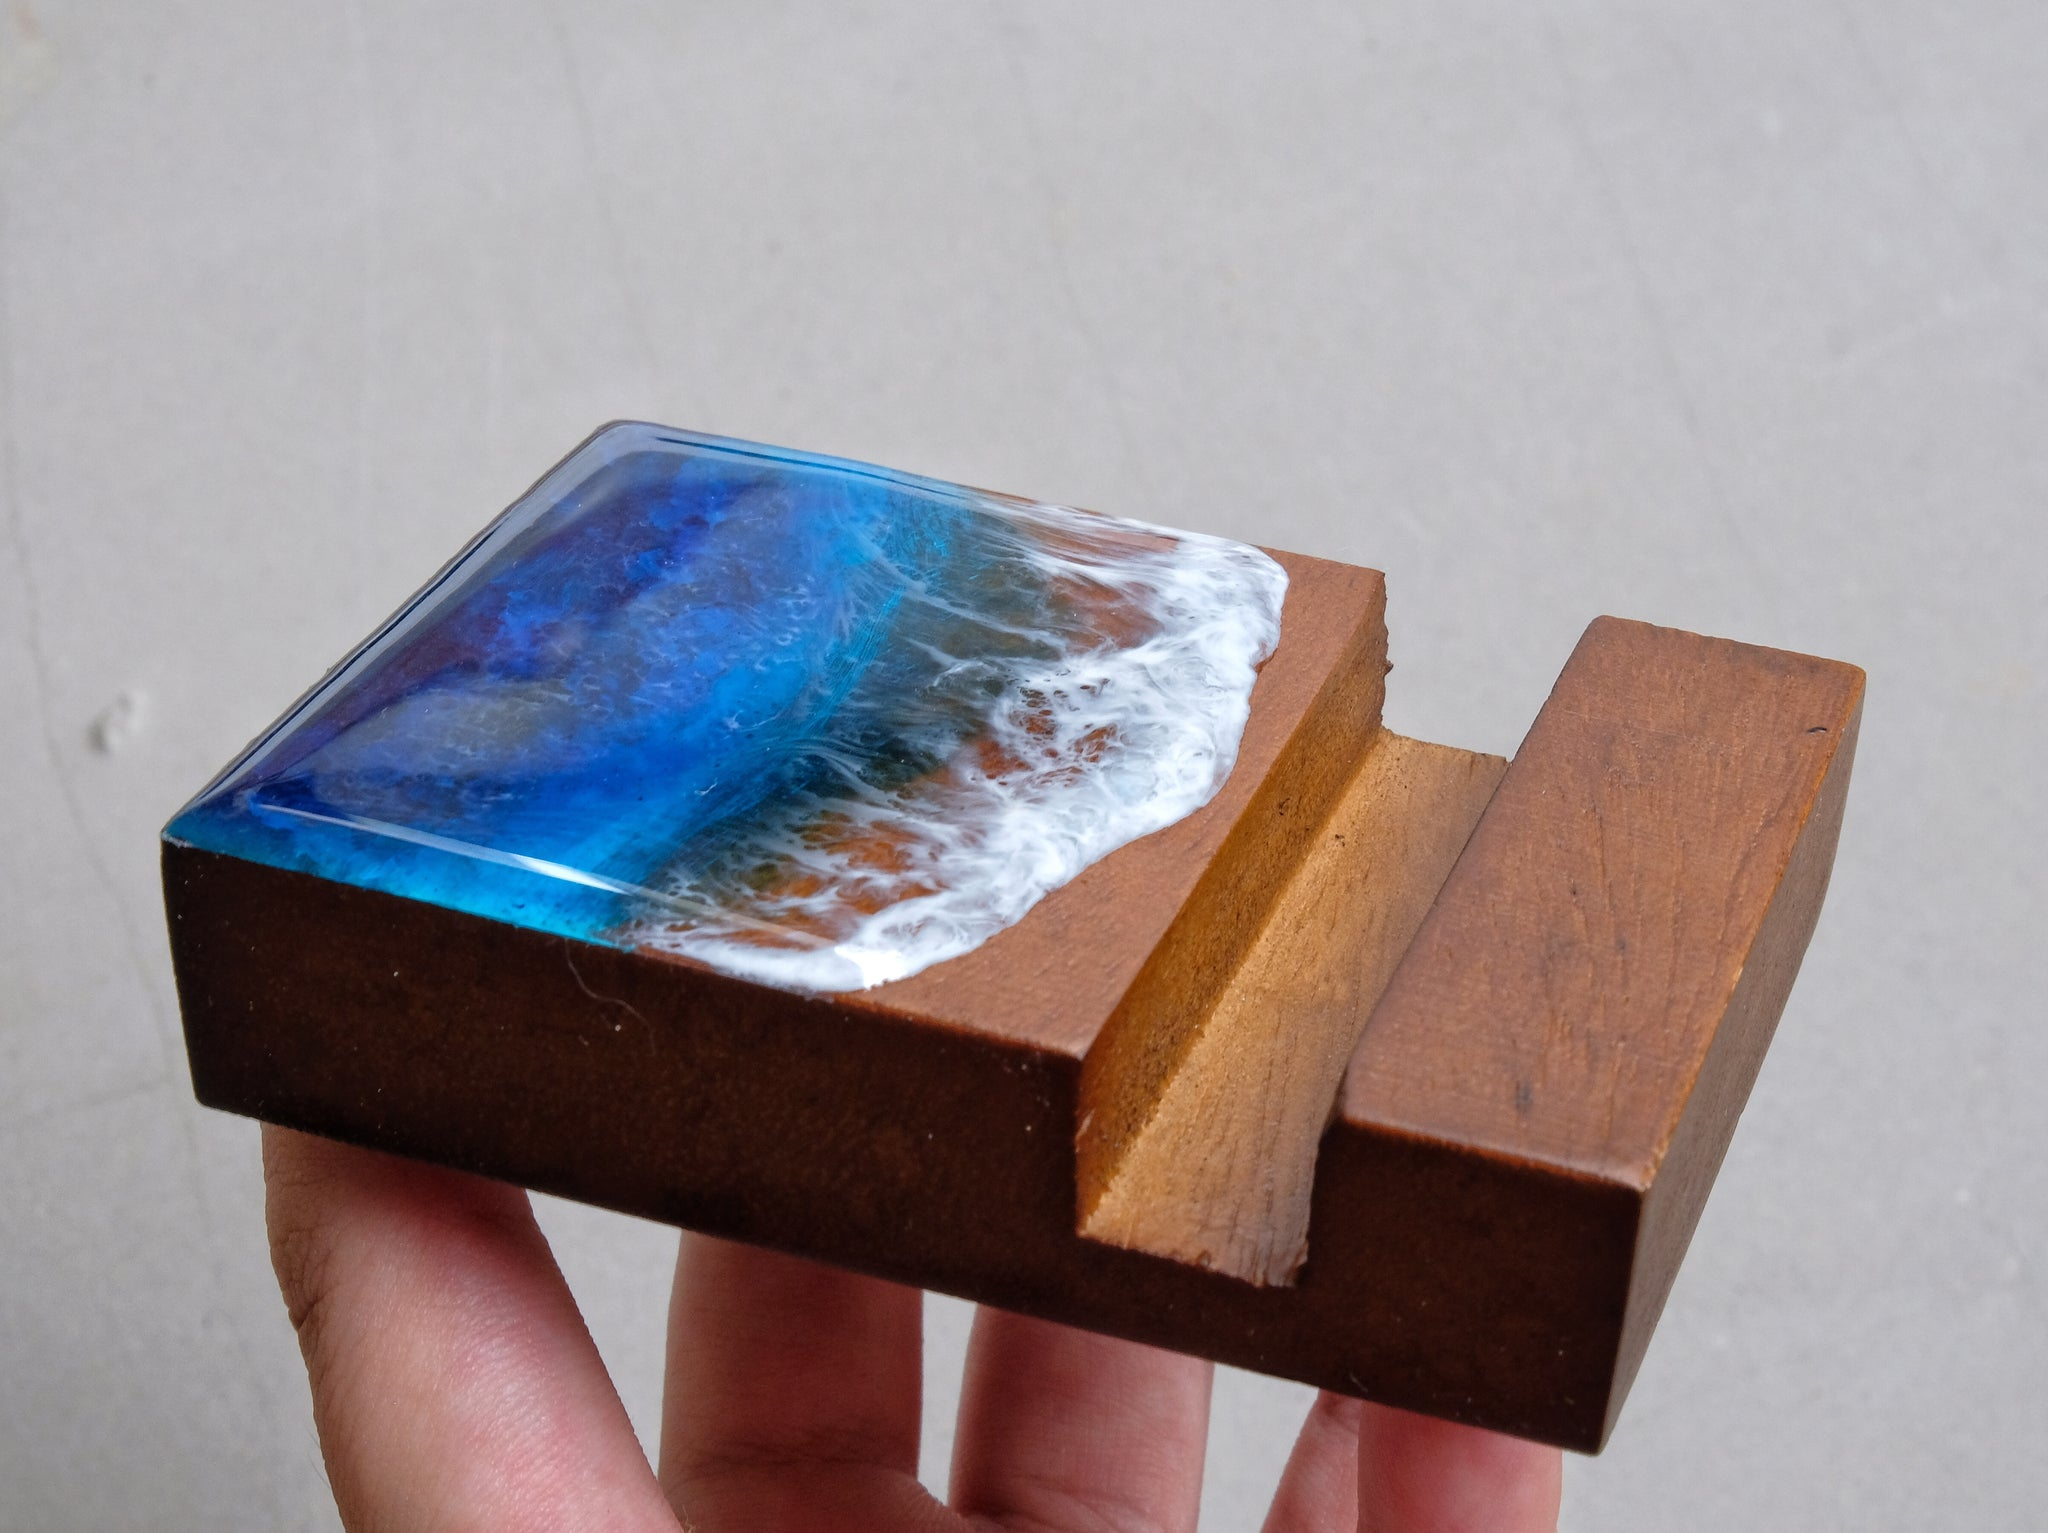 Blue & Turquoise Seascape Wooden Name Card/Phone Holder #1